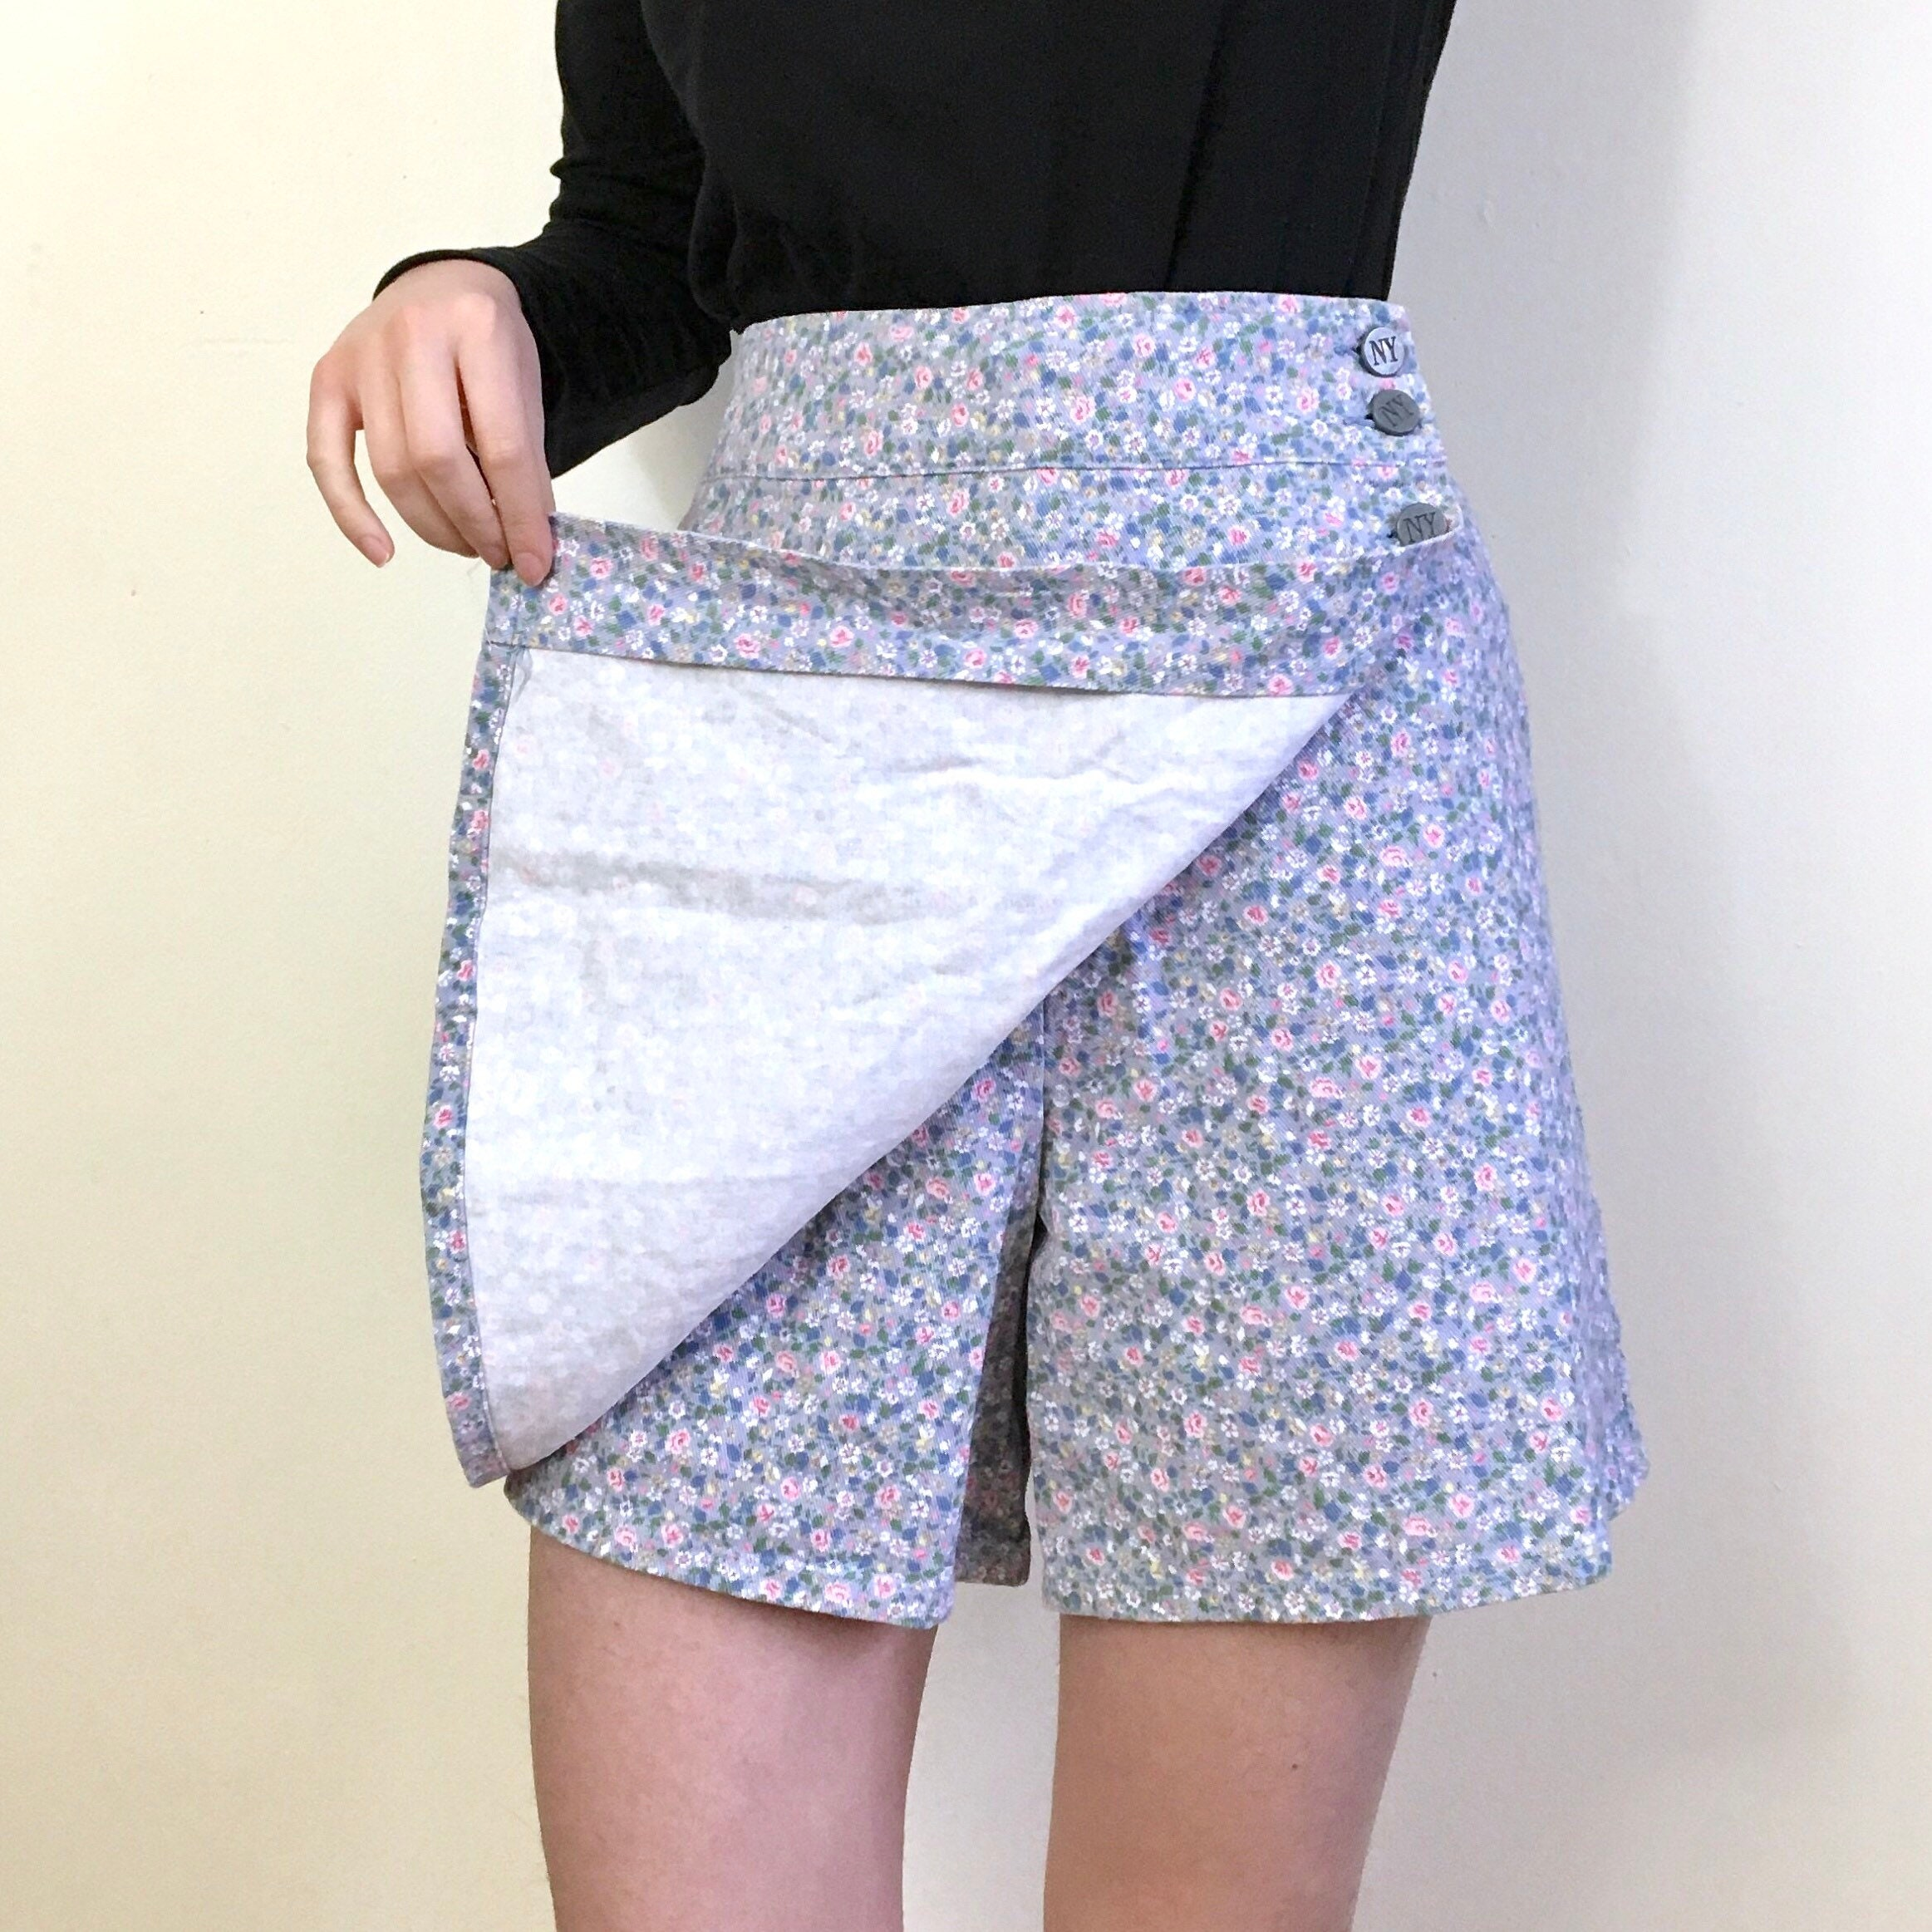 93ef901a793 Vintage 90s Skort Mini Skirt / Shorts Summer Cotton High | Etsy